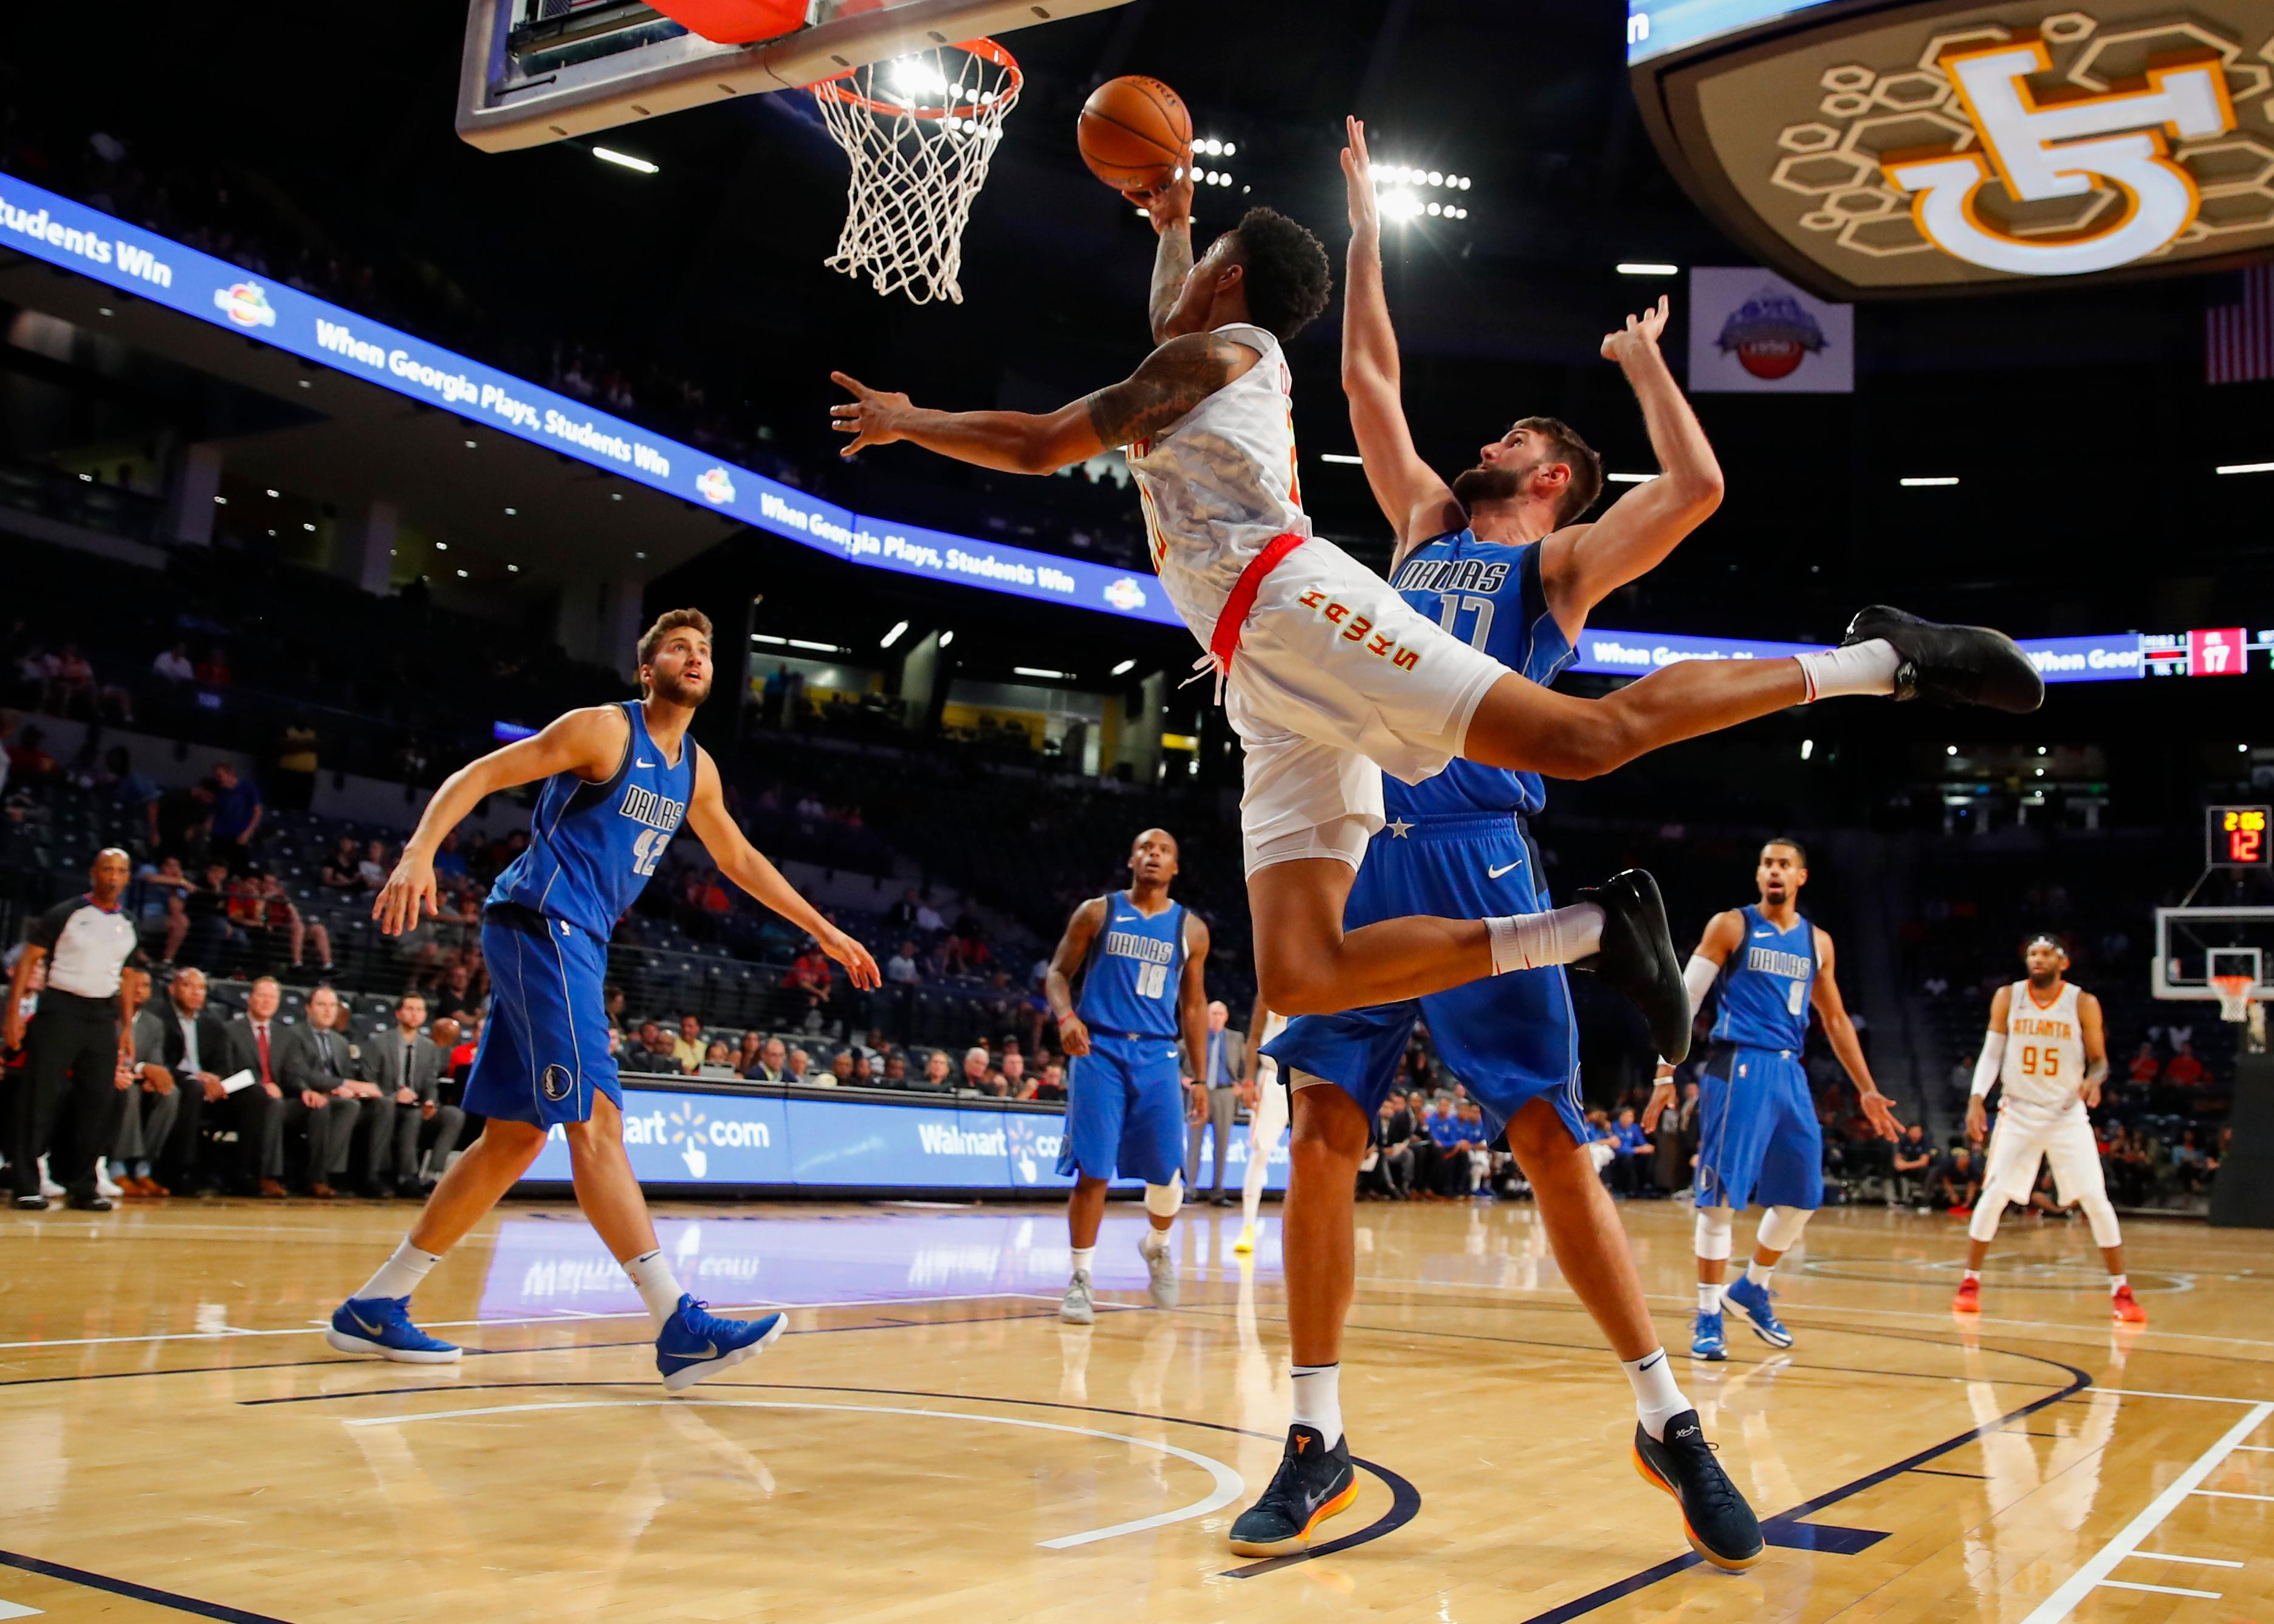 Atlanta Hawks forward John Collins (20) goes up to shoot as Dallas Mavericks center Jeff Withey (17) defends in the first half of an NBA preseason basketball game Thursday, Oct. 12, 2017, in Atlanta. (AP Photo/Todd Kirkland)